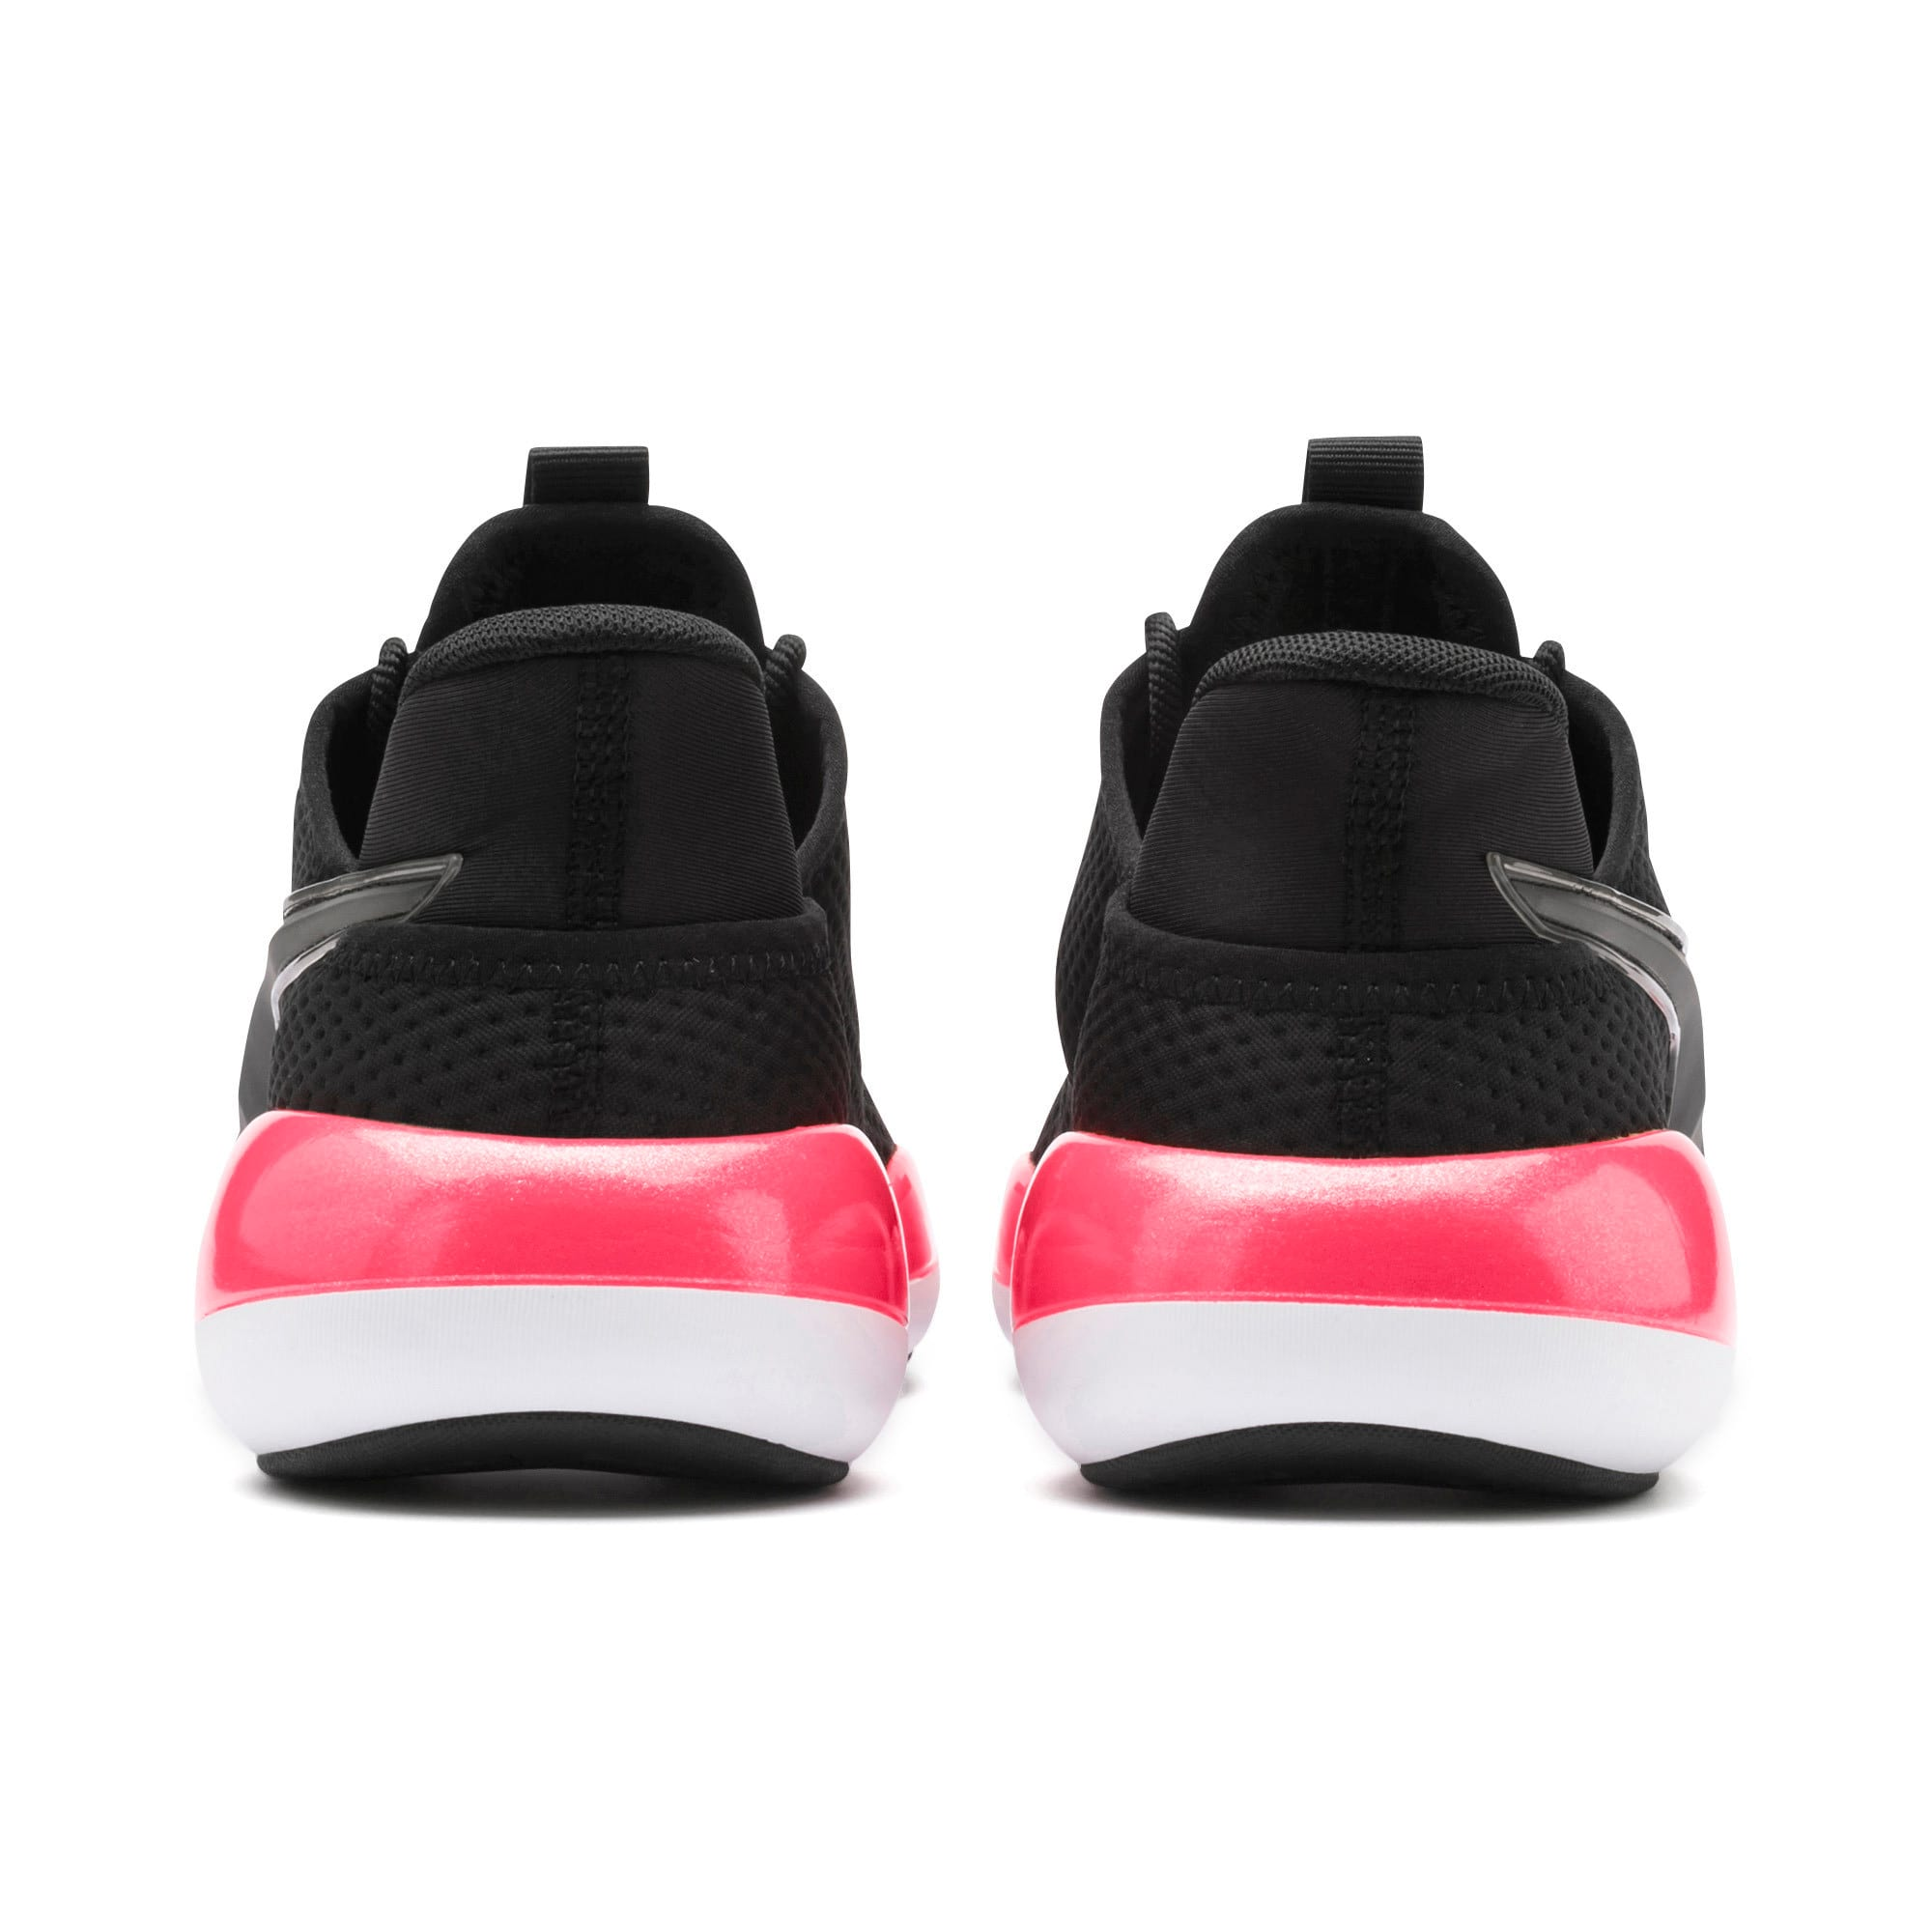 Thumbnail 4 of Mode XT Damen Trainingsschuhe, Puma Black-Pink Alert, medium